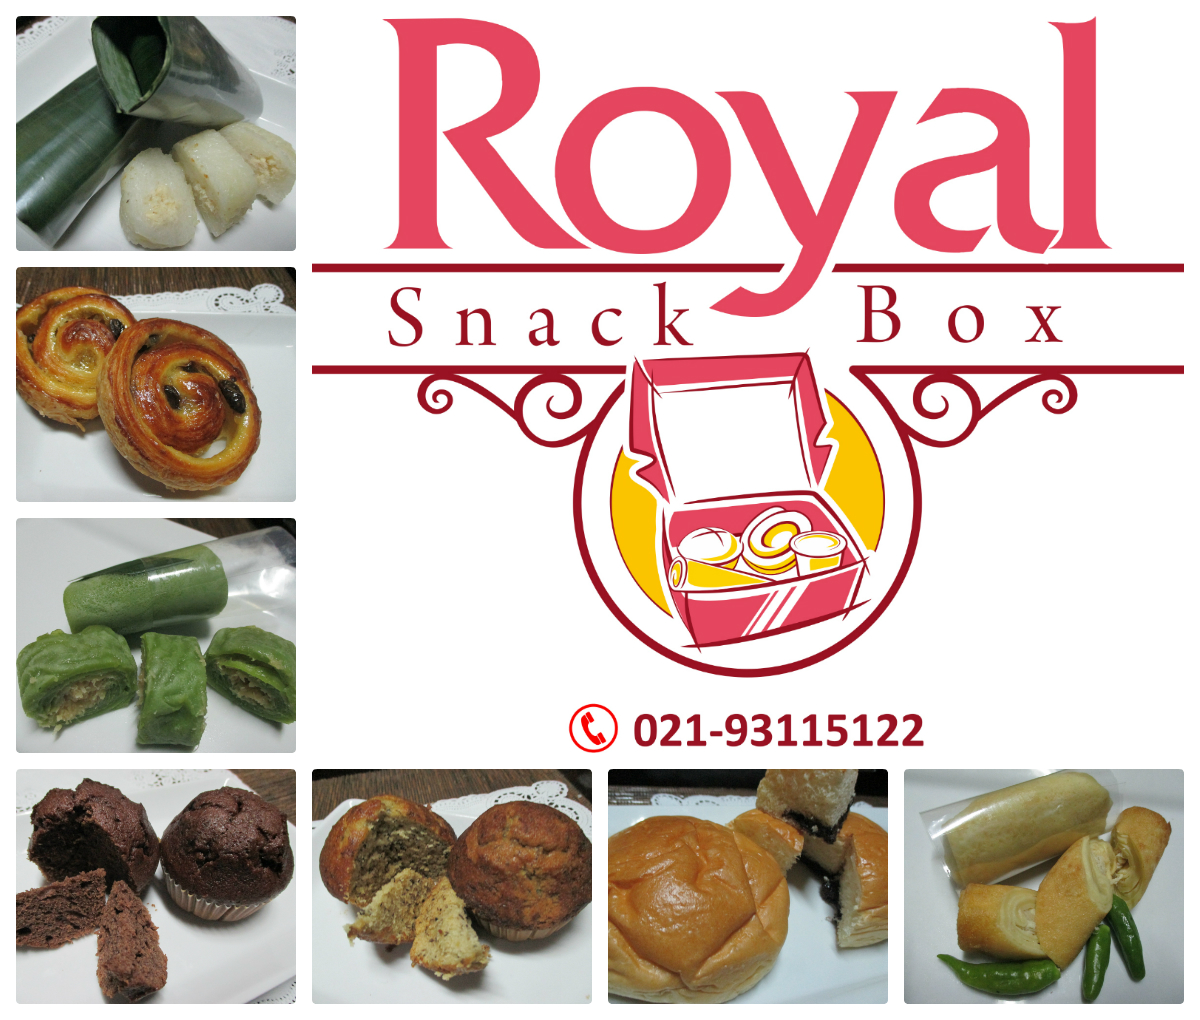 Snack Box Delivery Jakarta Selatan